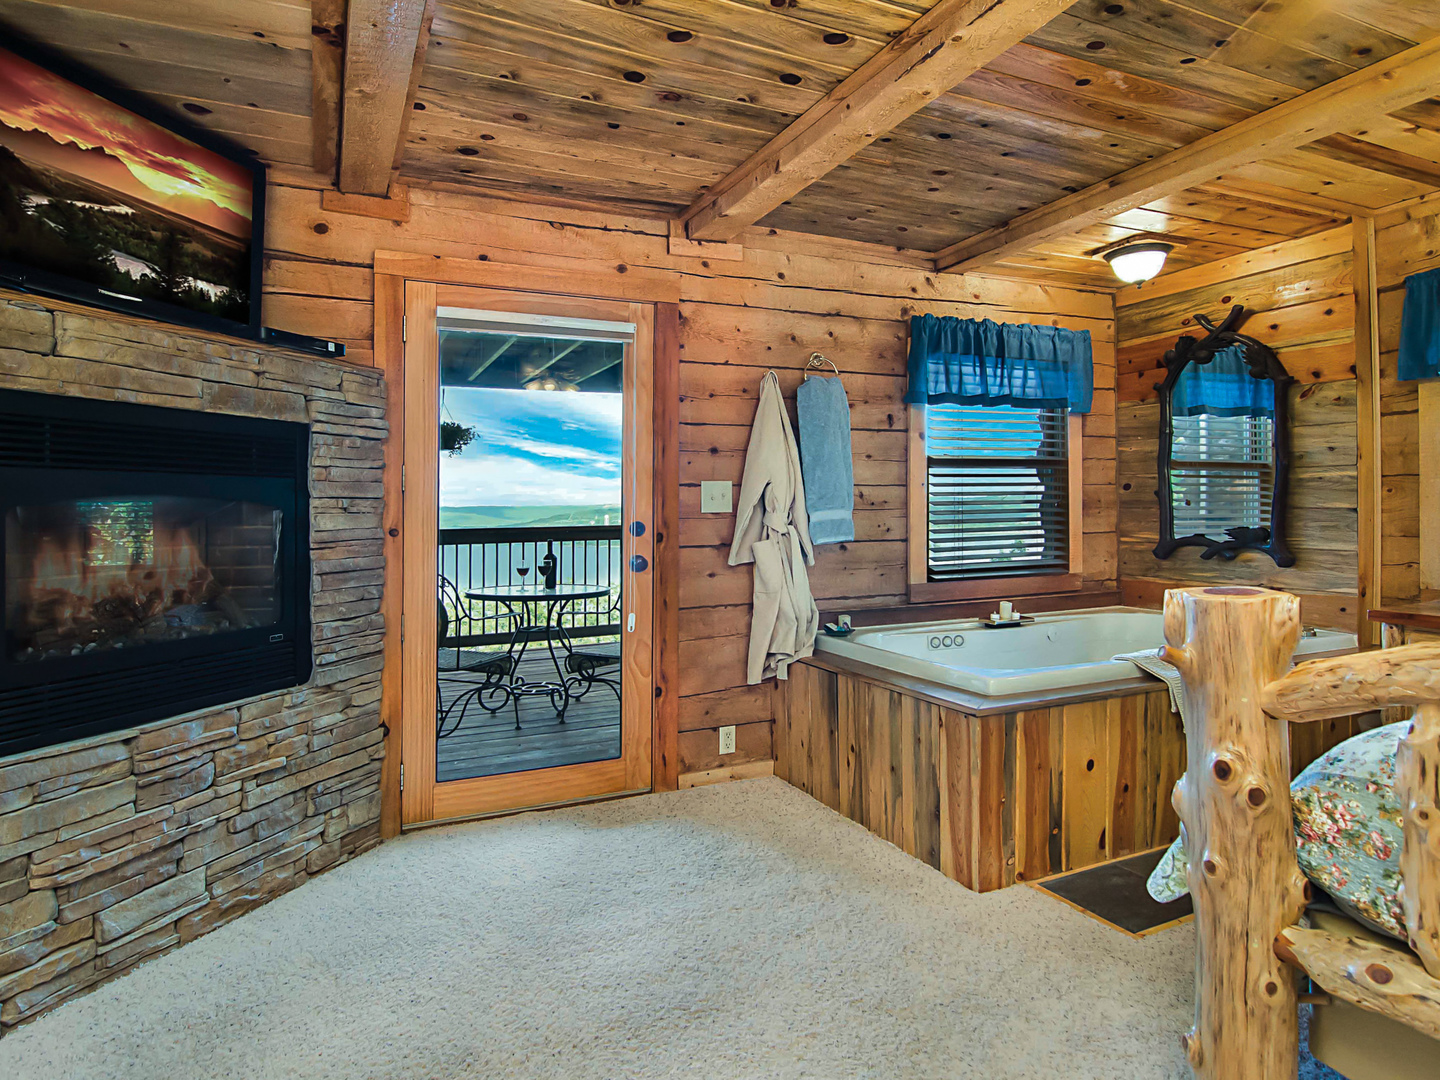 A room filled with furniture and a fireplace at White River Lodge.